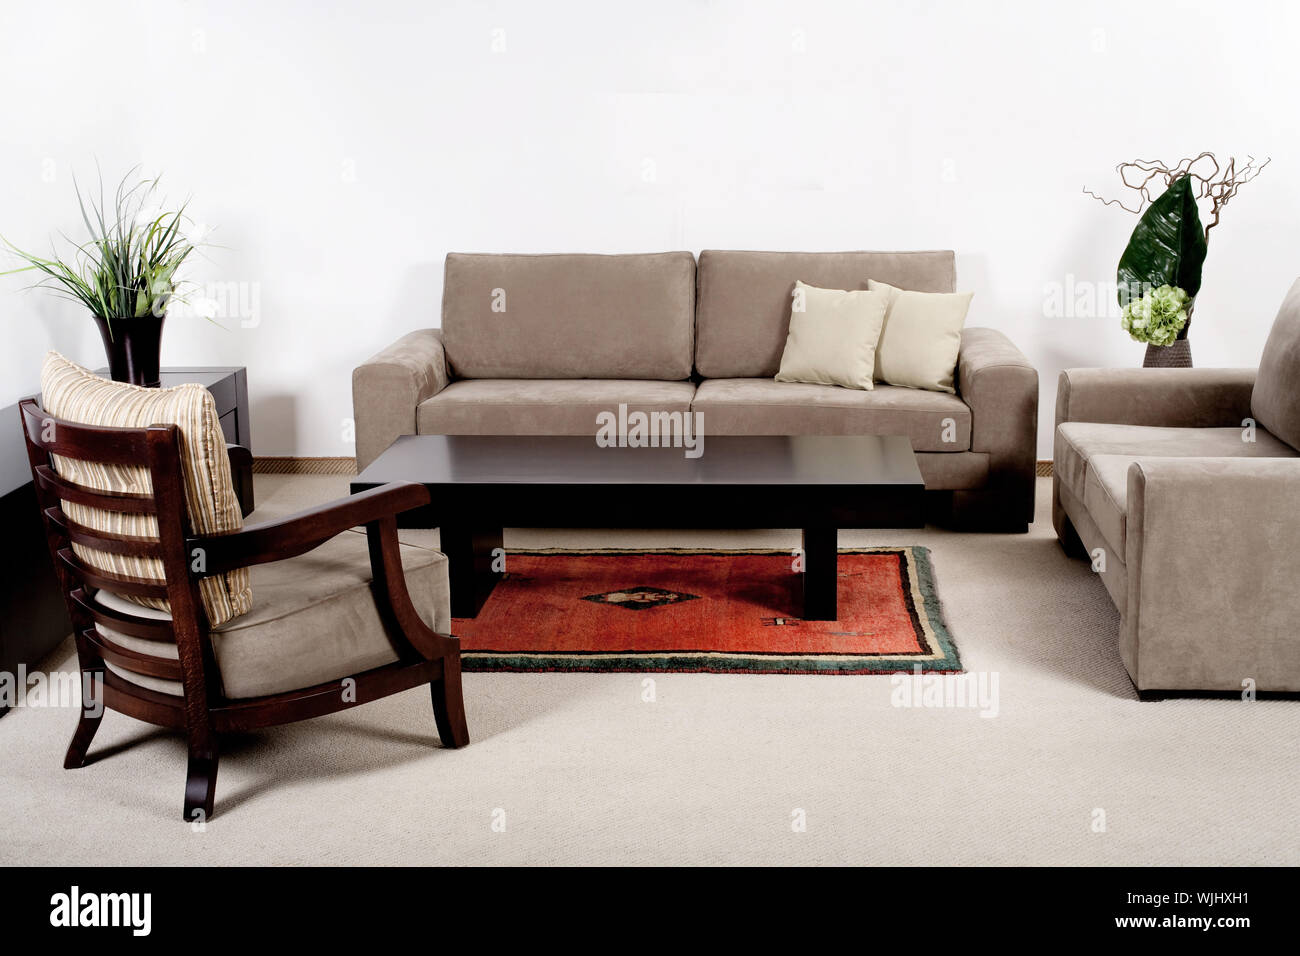 Well Decorated Modern Living Room Interior With Brownish